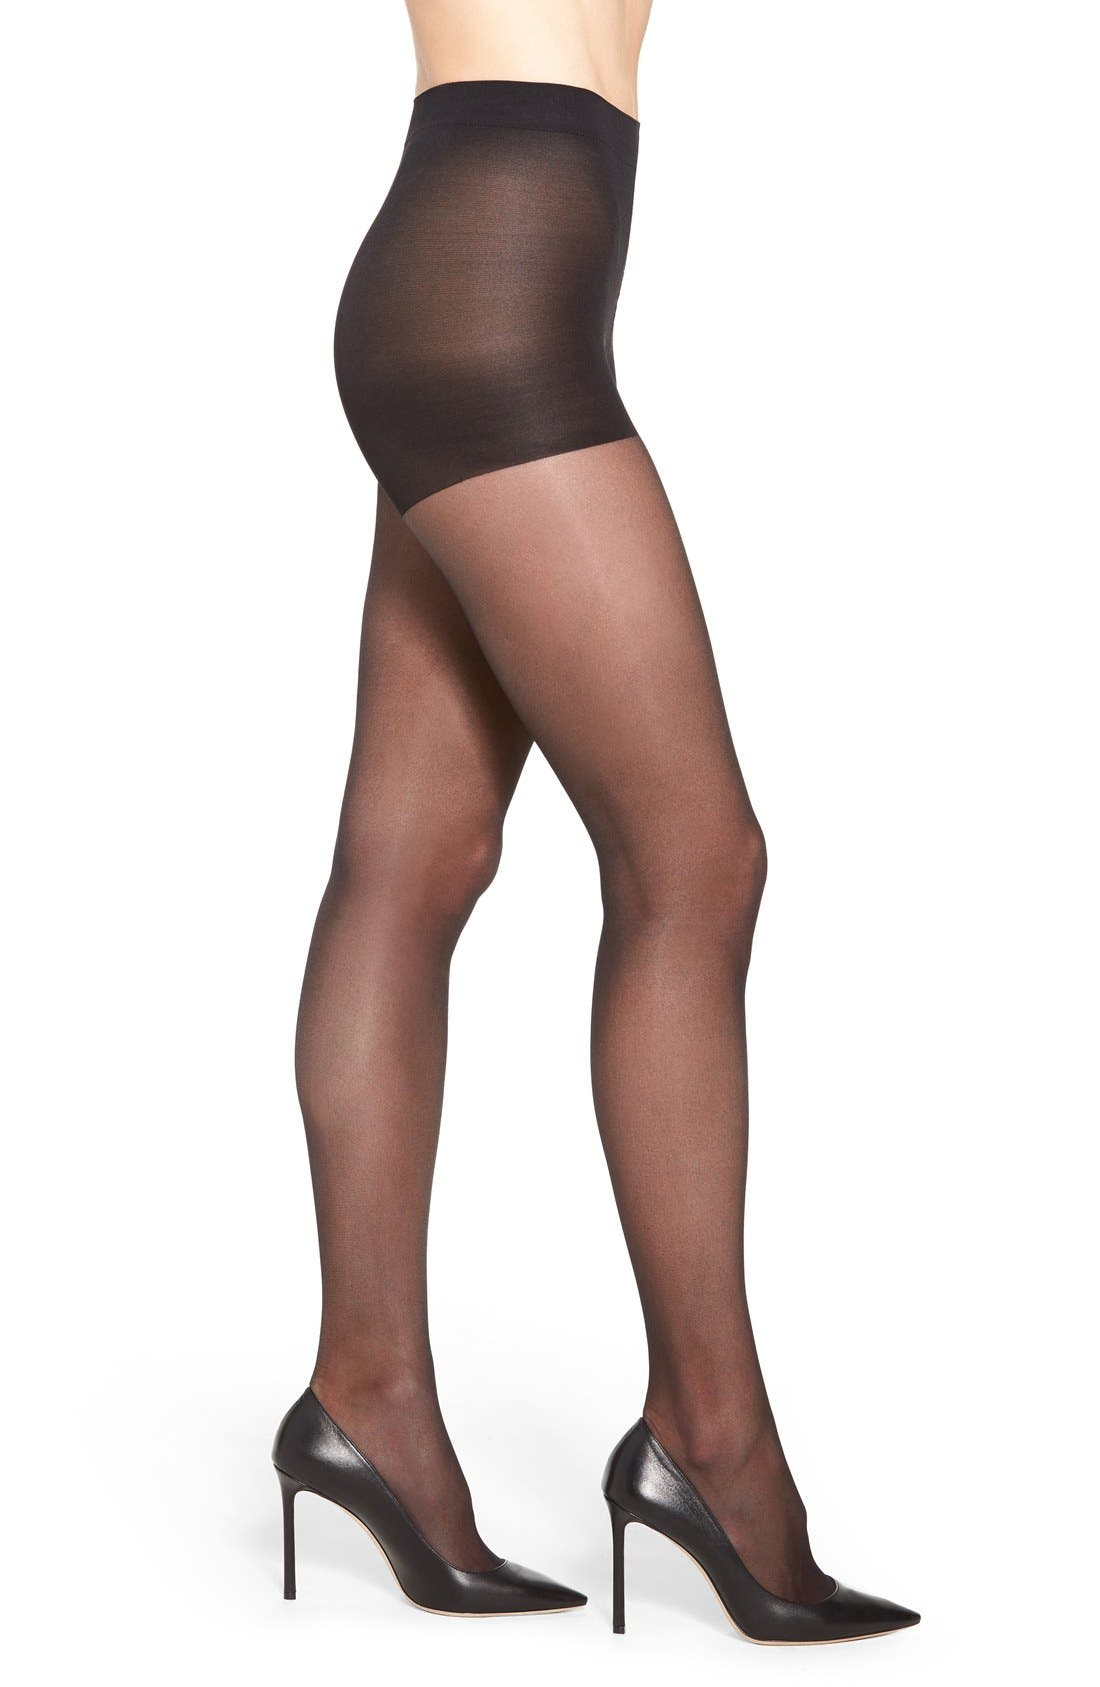 Nordstrom Light Support Pantyhose (3 for $36)